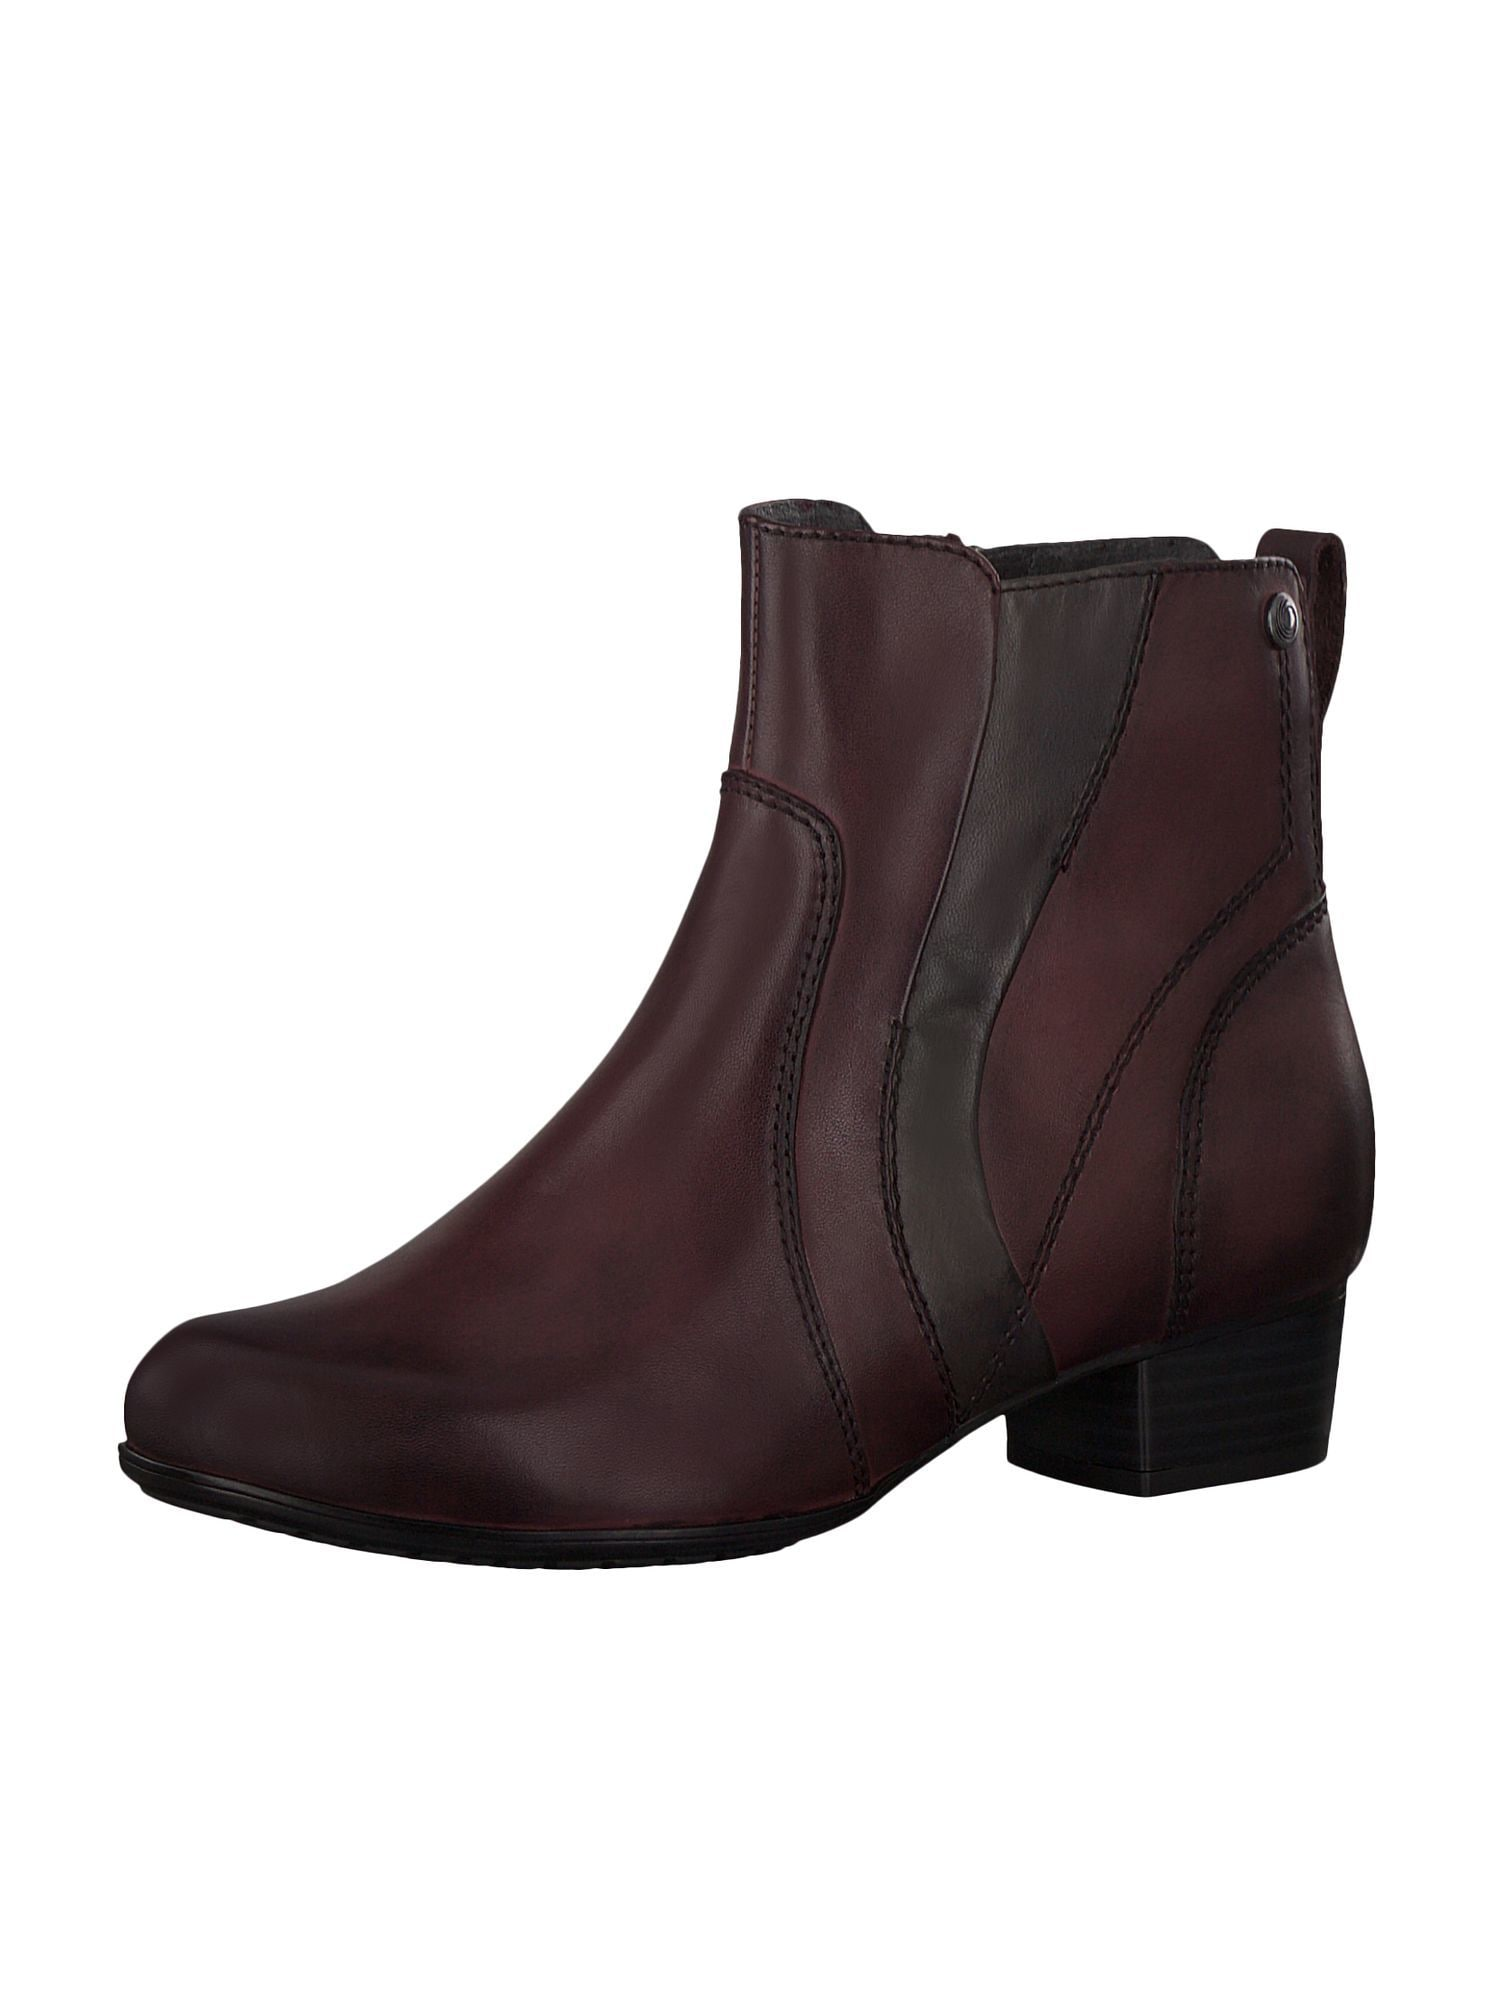 be natural - Stiefelette